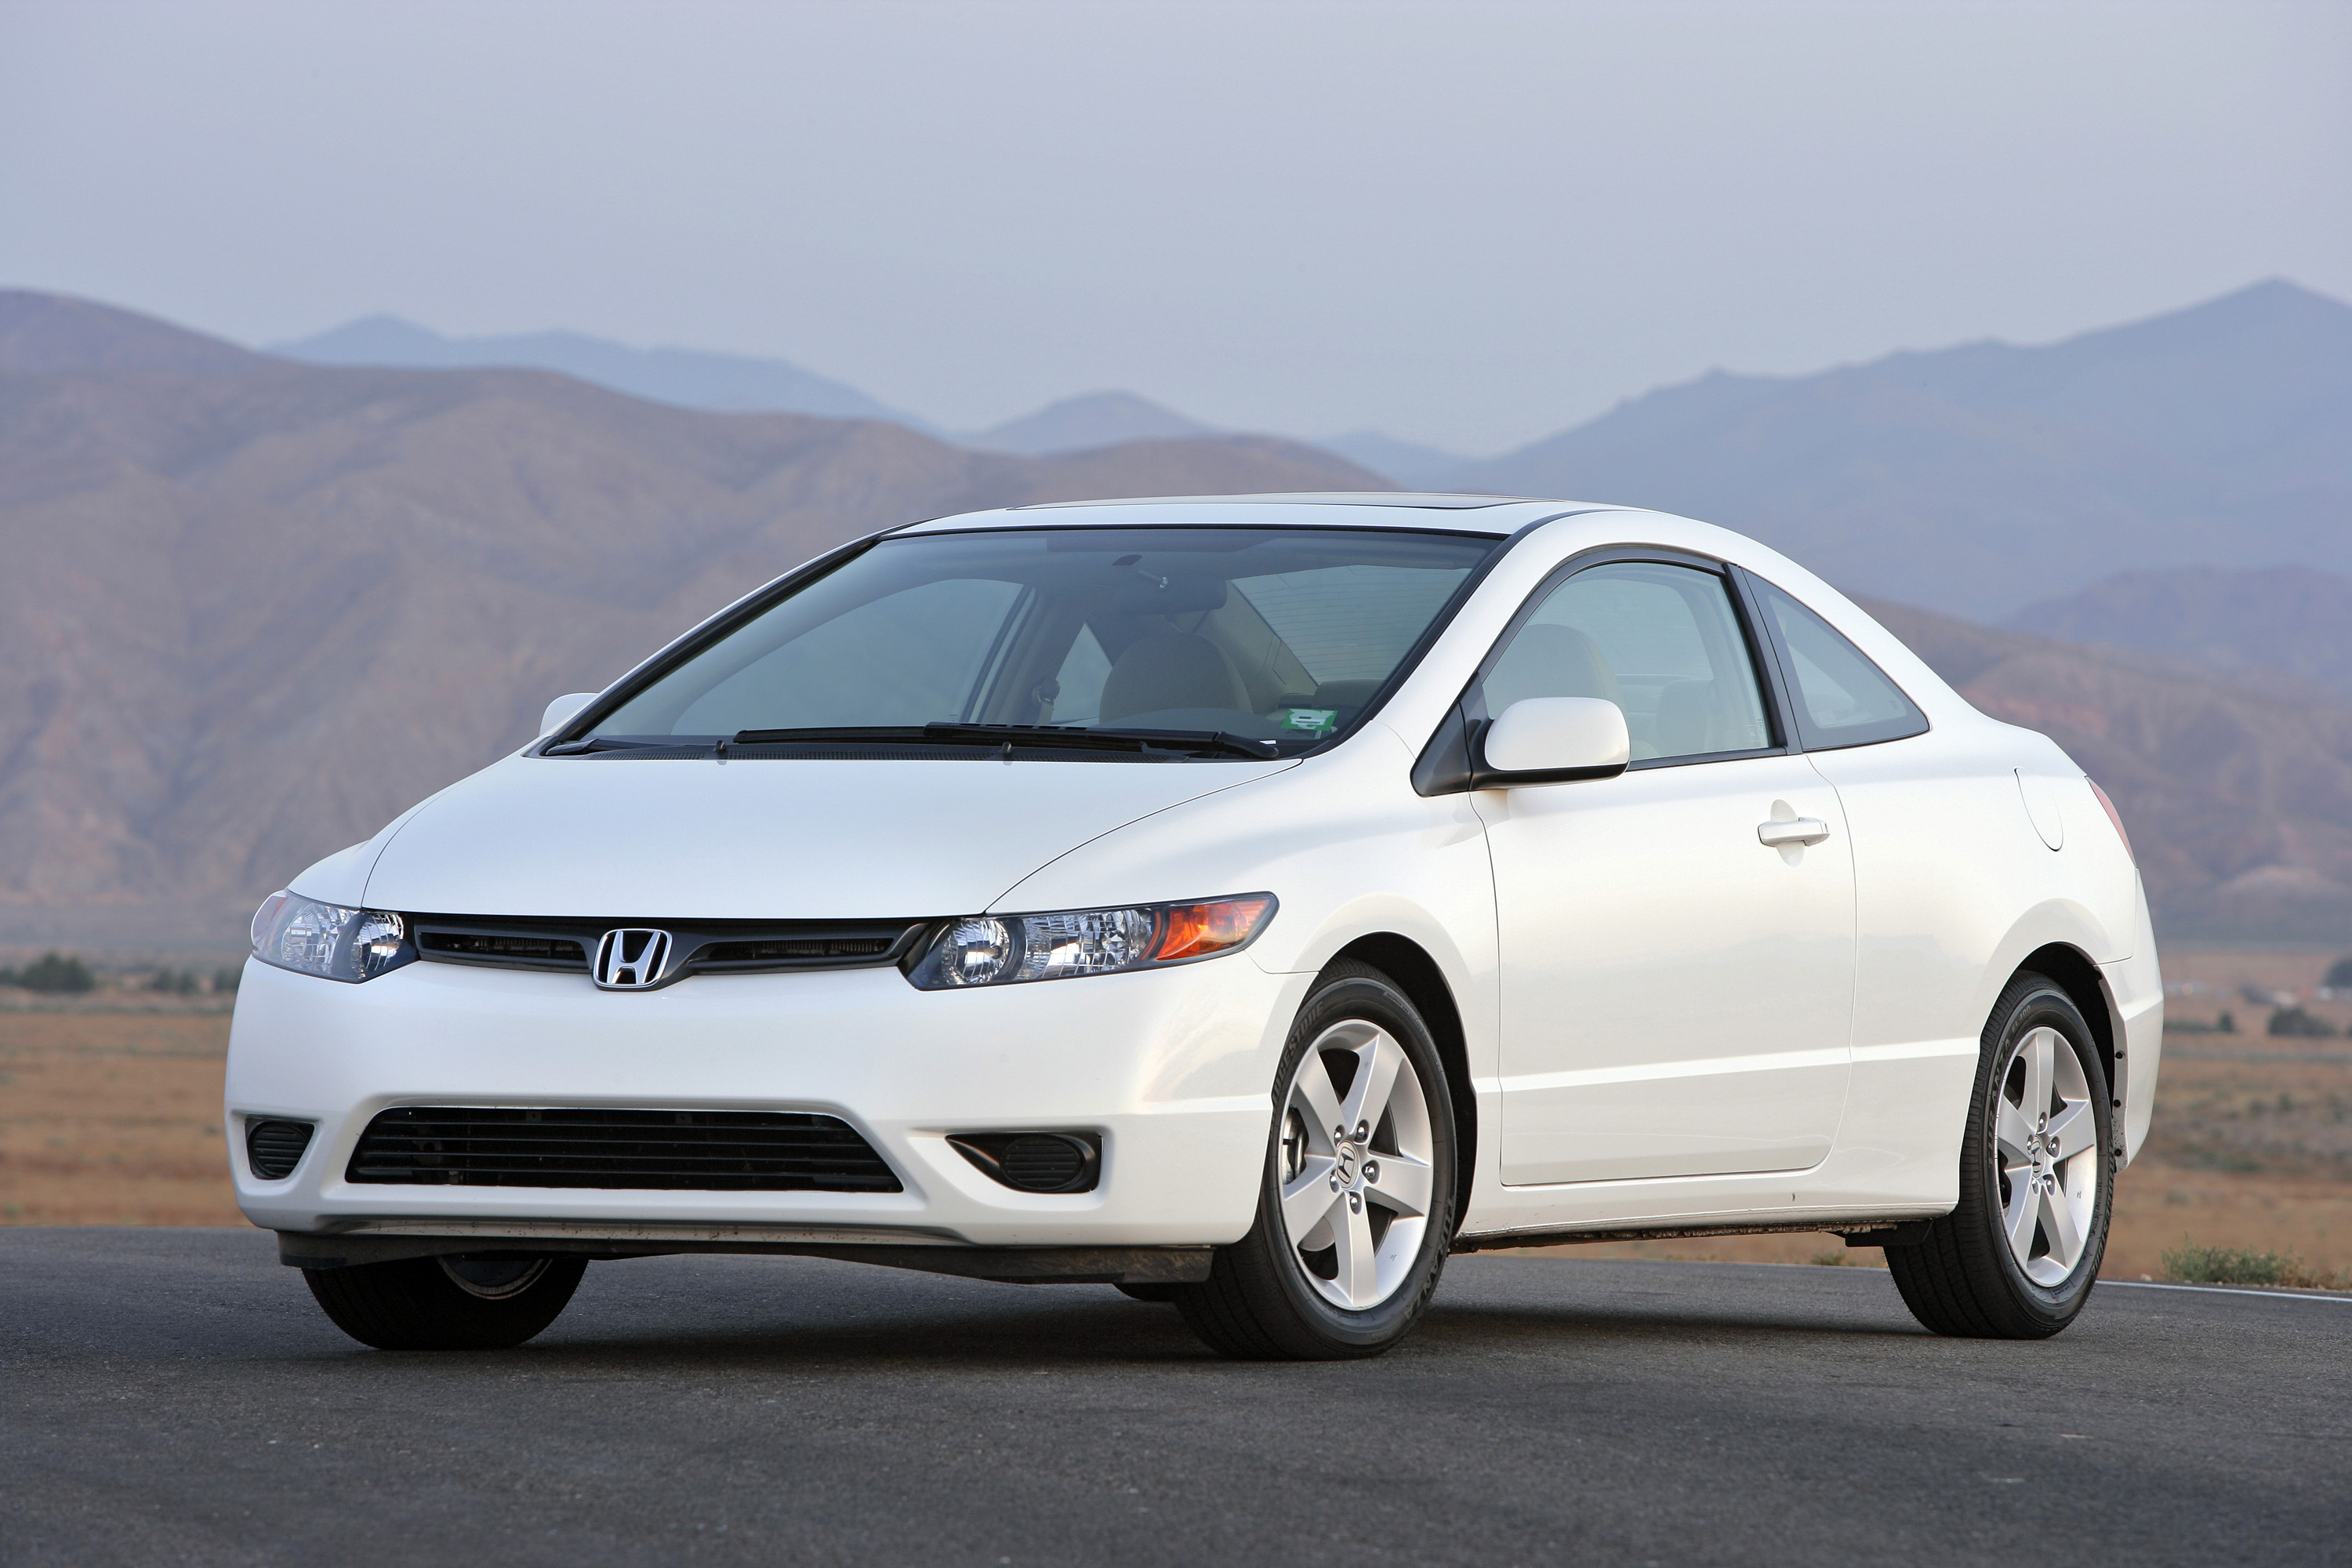 2006 Honda Civic Coupe | Top Speed